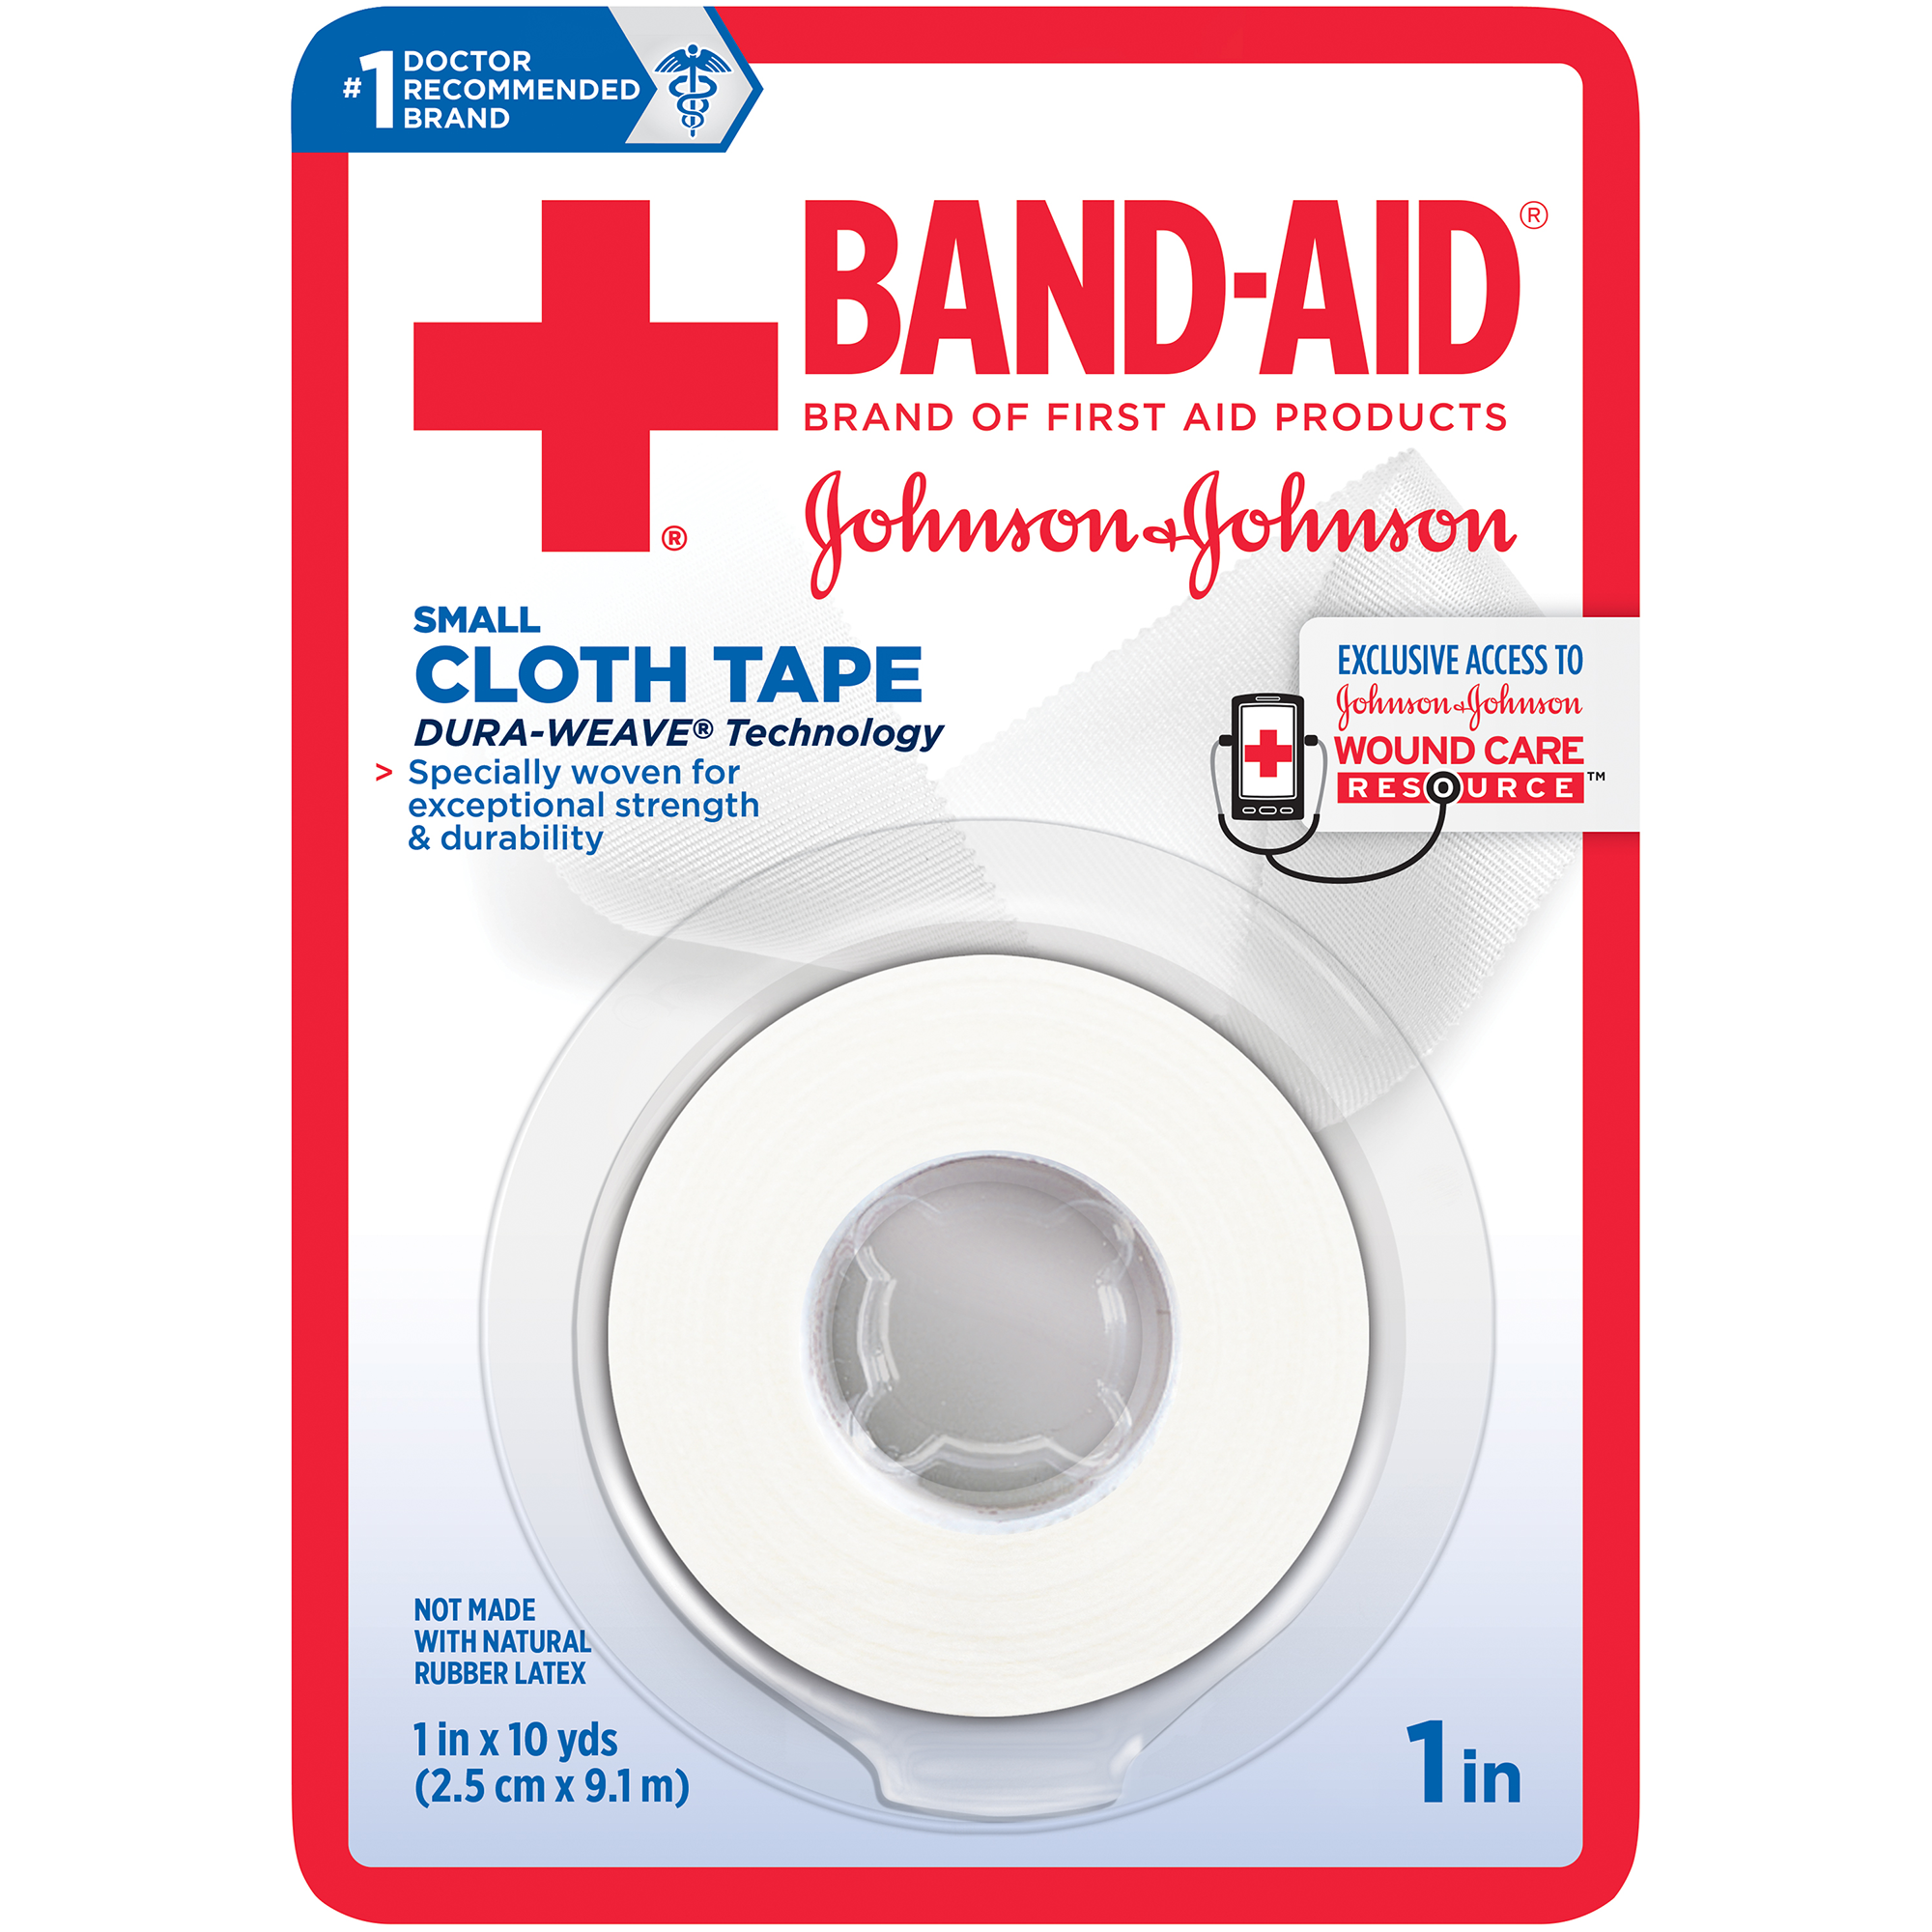 Medical Cloth Tape Band Aid 174 Brand Of First Aid Products